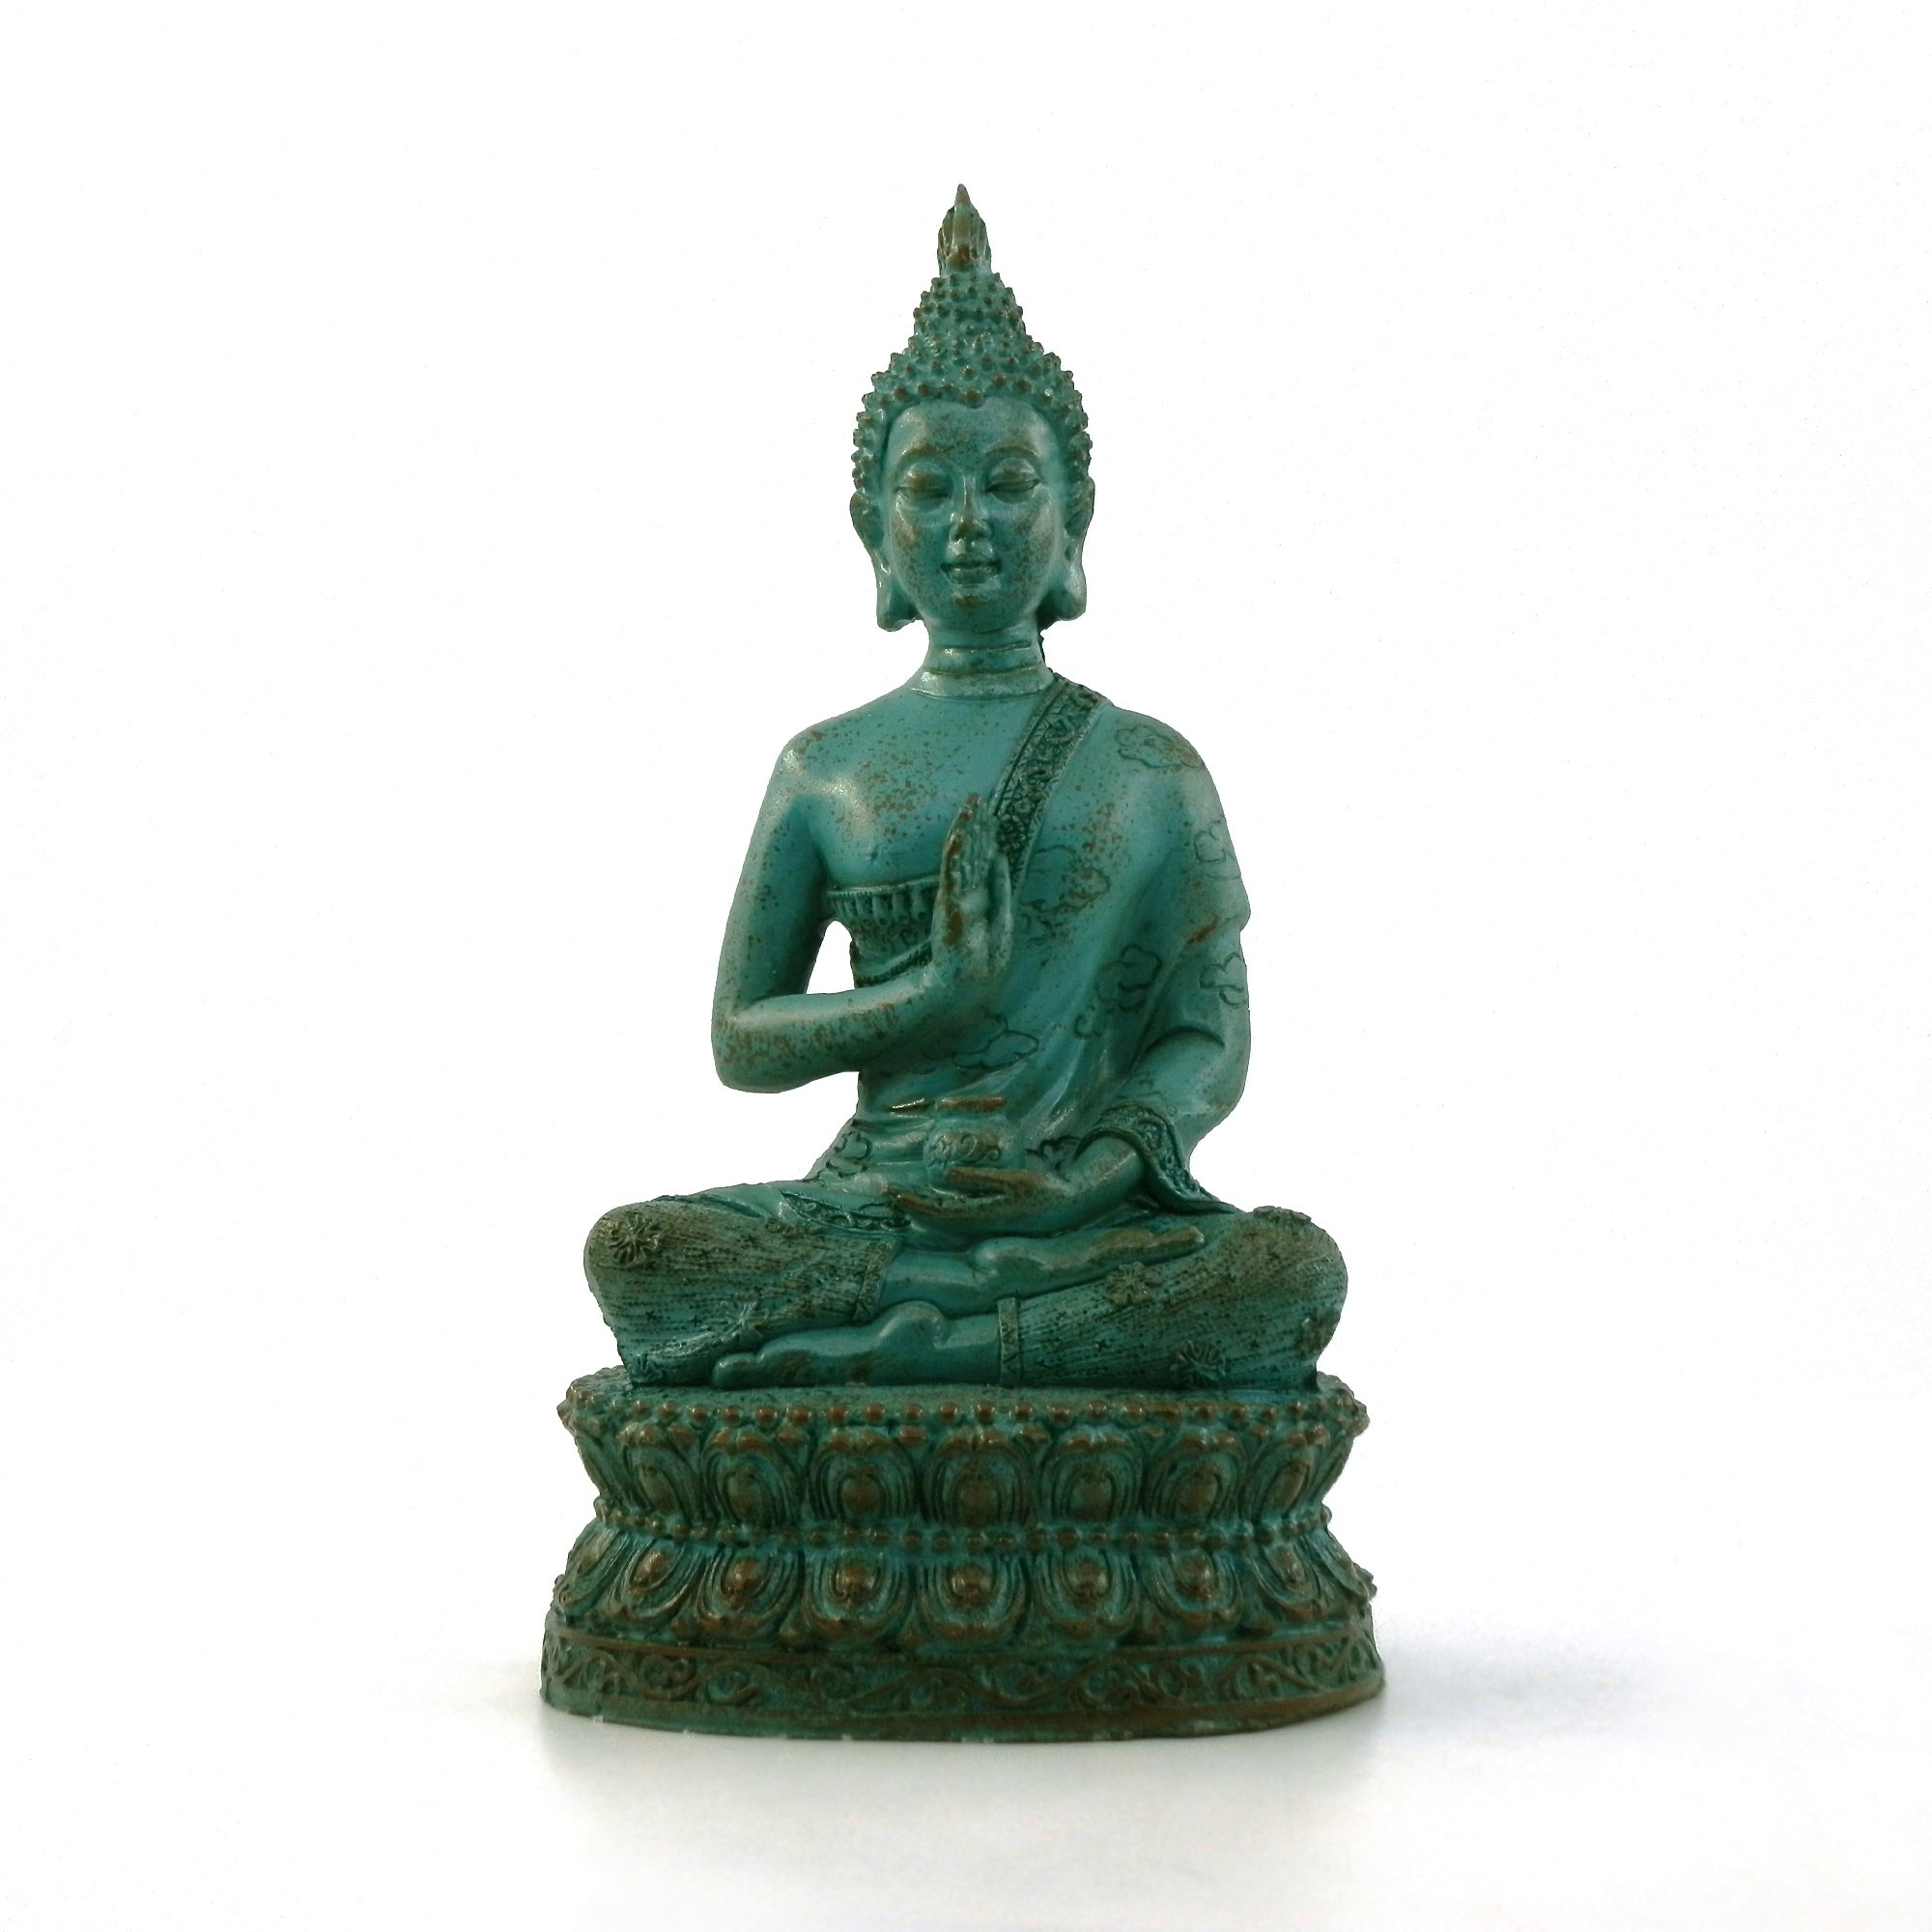 ornerx Thai Sitting Buddha Statue for Home Decor Verdigris 6.7'' by ornerx